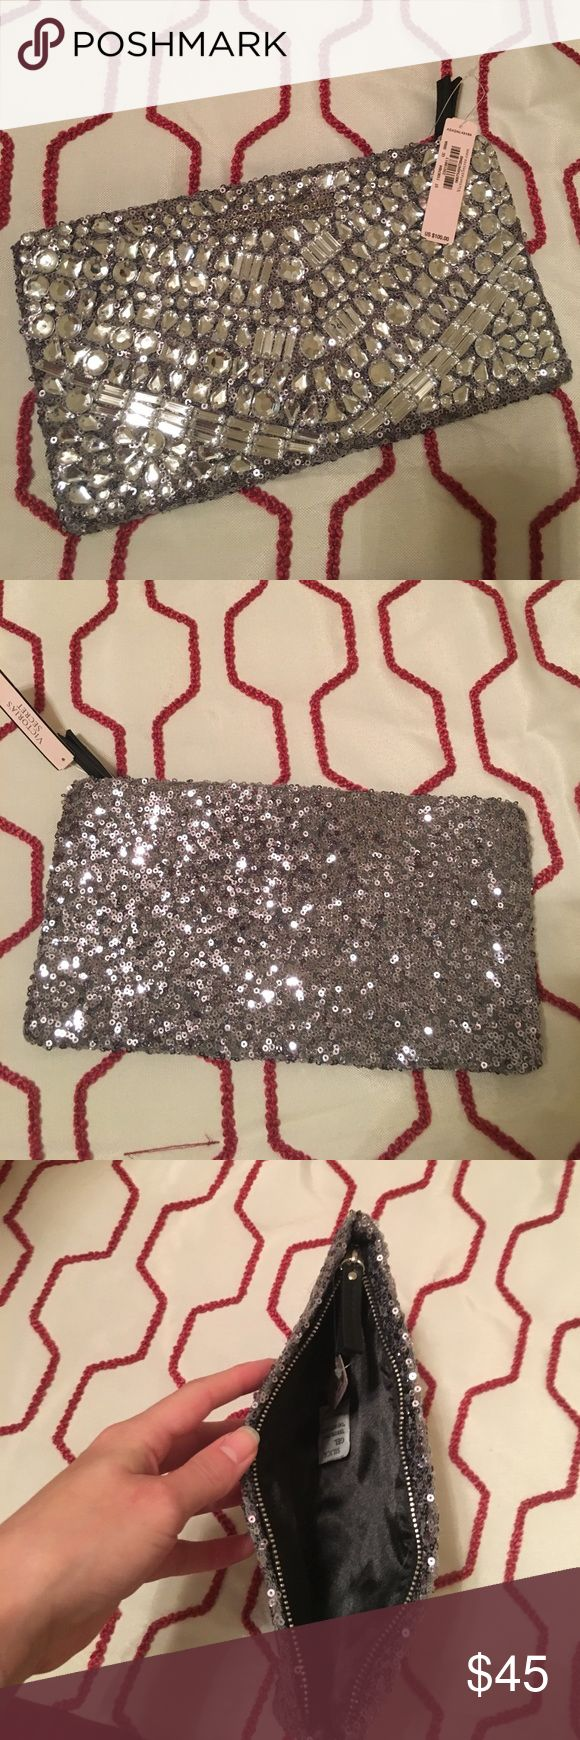 NWT Silver Sequined & Jeweled Beaded Clutch Statement clutch! NWT Victoria's Secret silver sequined and beaded with silver jewels. Black zipper with black satin interior.  ⭐️Bundle for Discounts⭐️  🌺15% off 2+ Items! 🌺 Victoria's Secret Bags